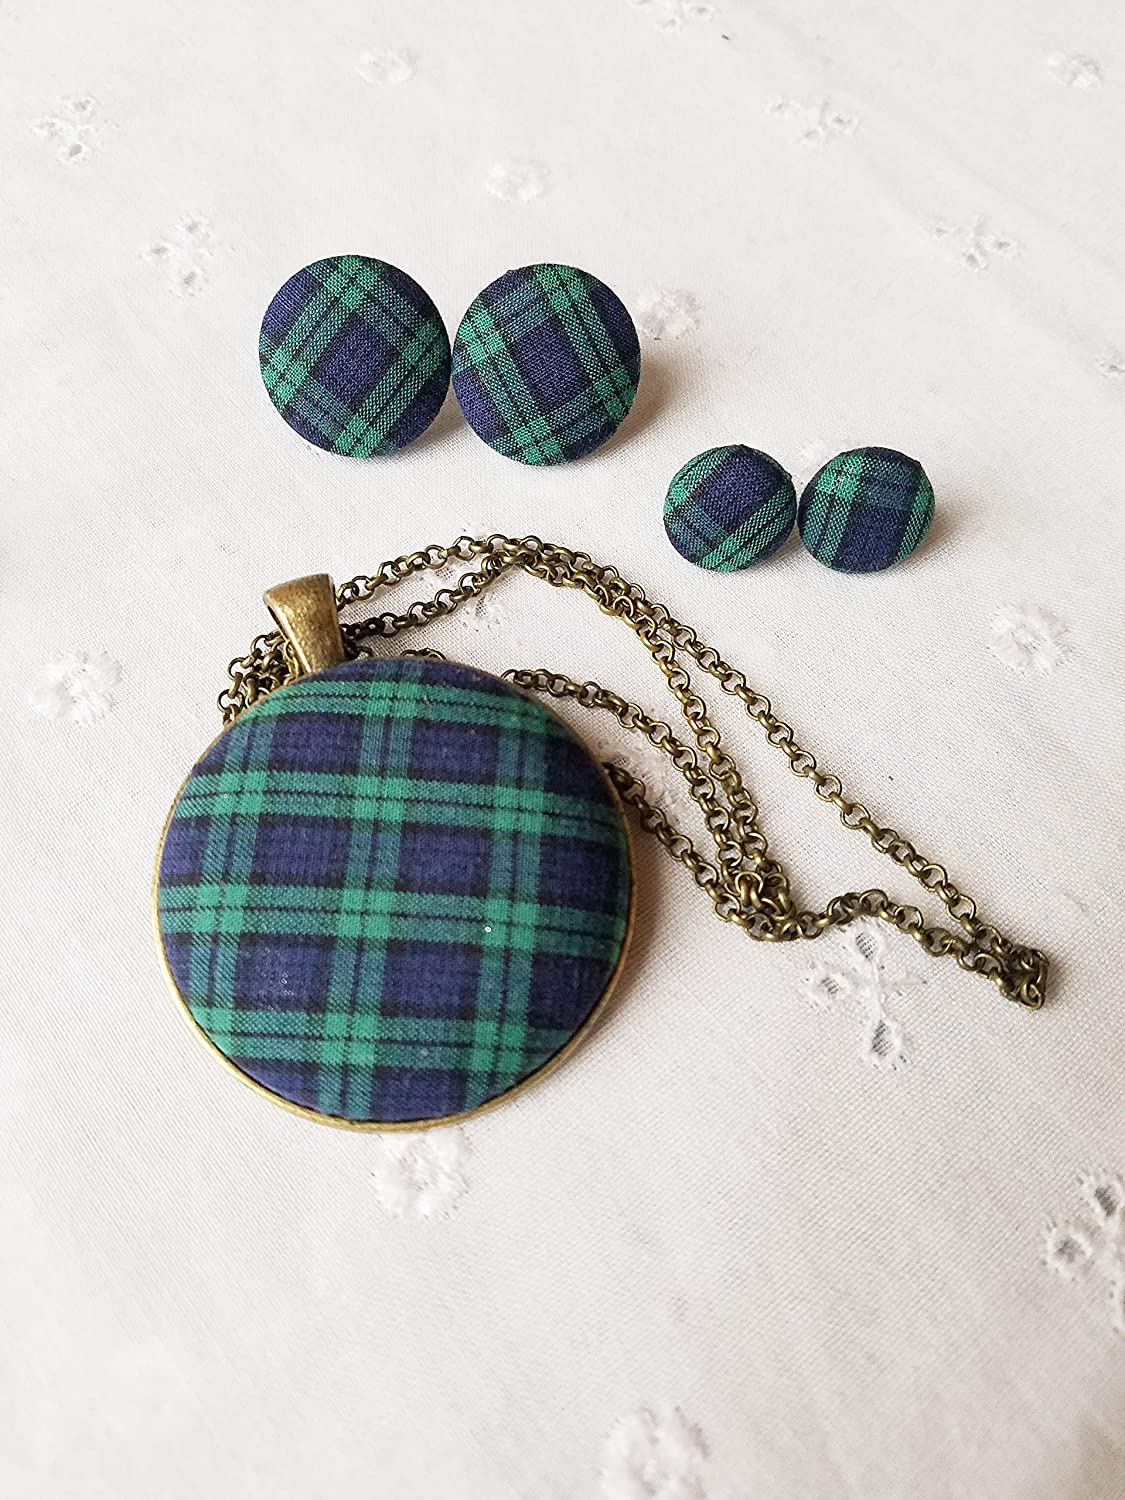 Plaid, Buffalo Check Jewelry/Plaid Necklace/Plaid Earrings/Buffalo Check Earrings/Fabric Earrings/Button Earrings/Blue and Green Plaid/Tartan